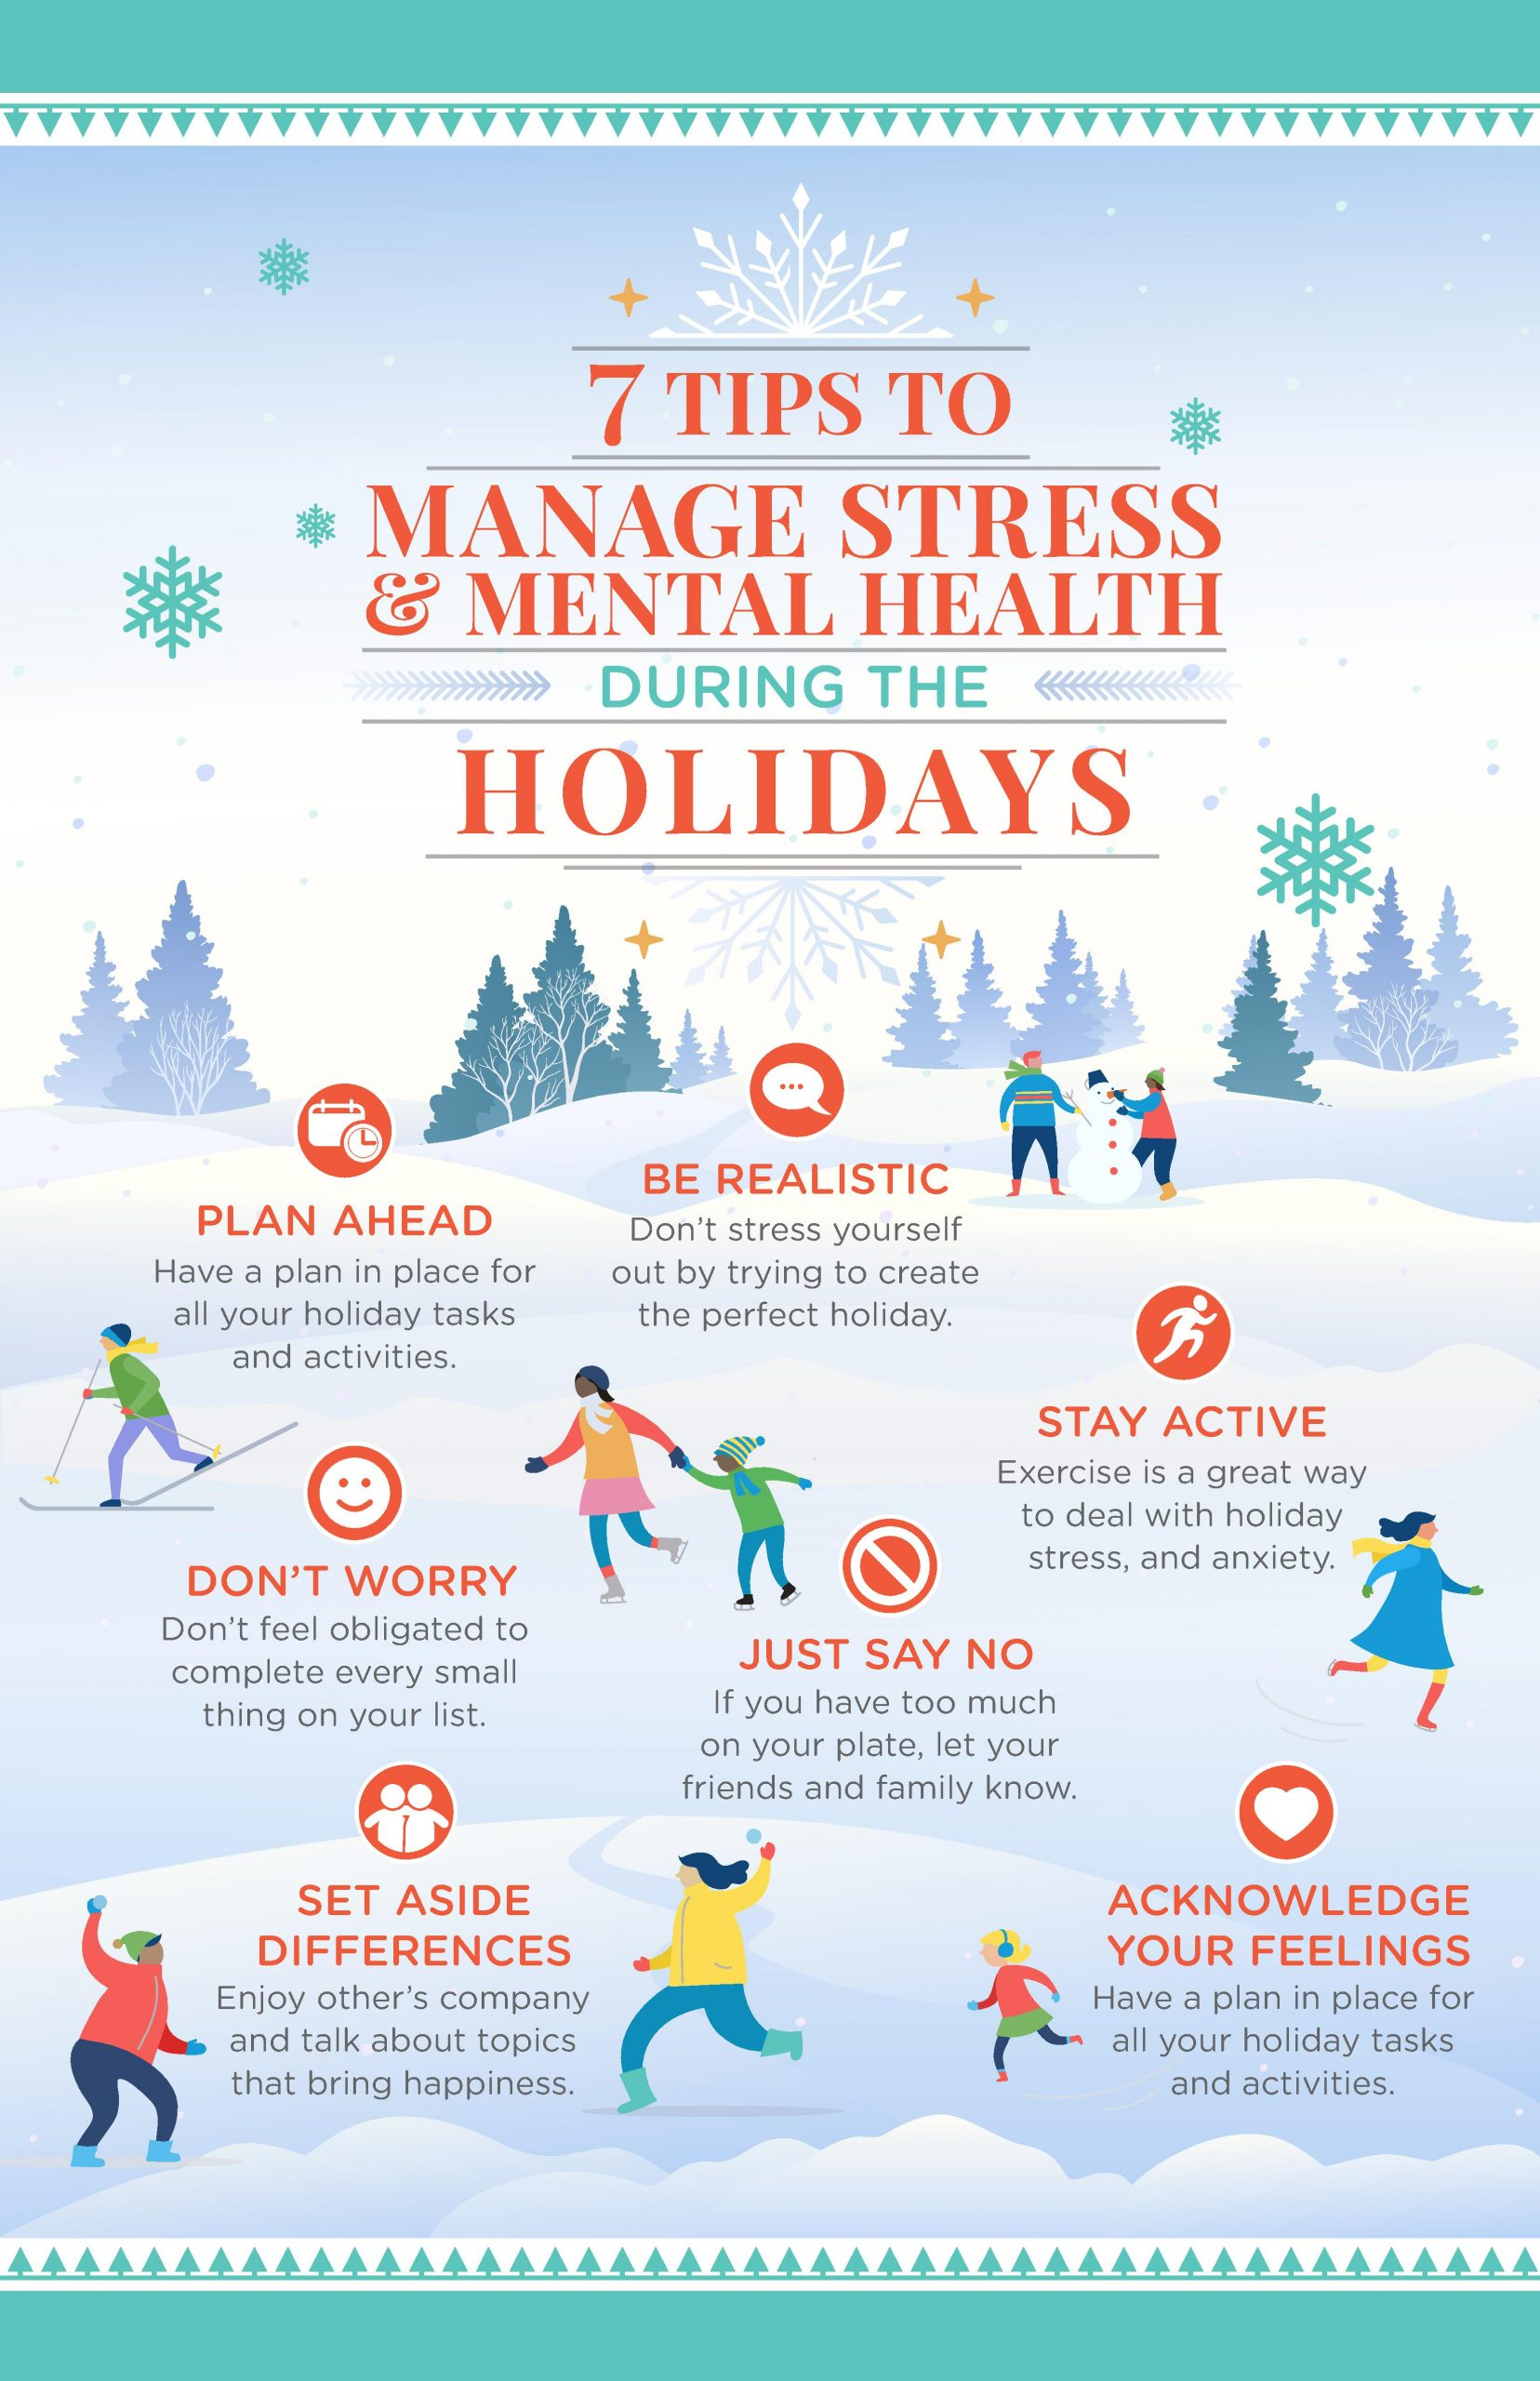 How to Manage Stress & Mental Health During the Holidays ...